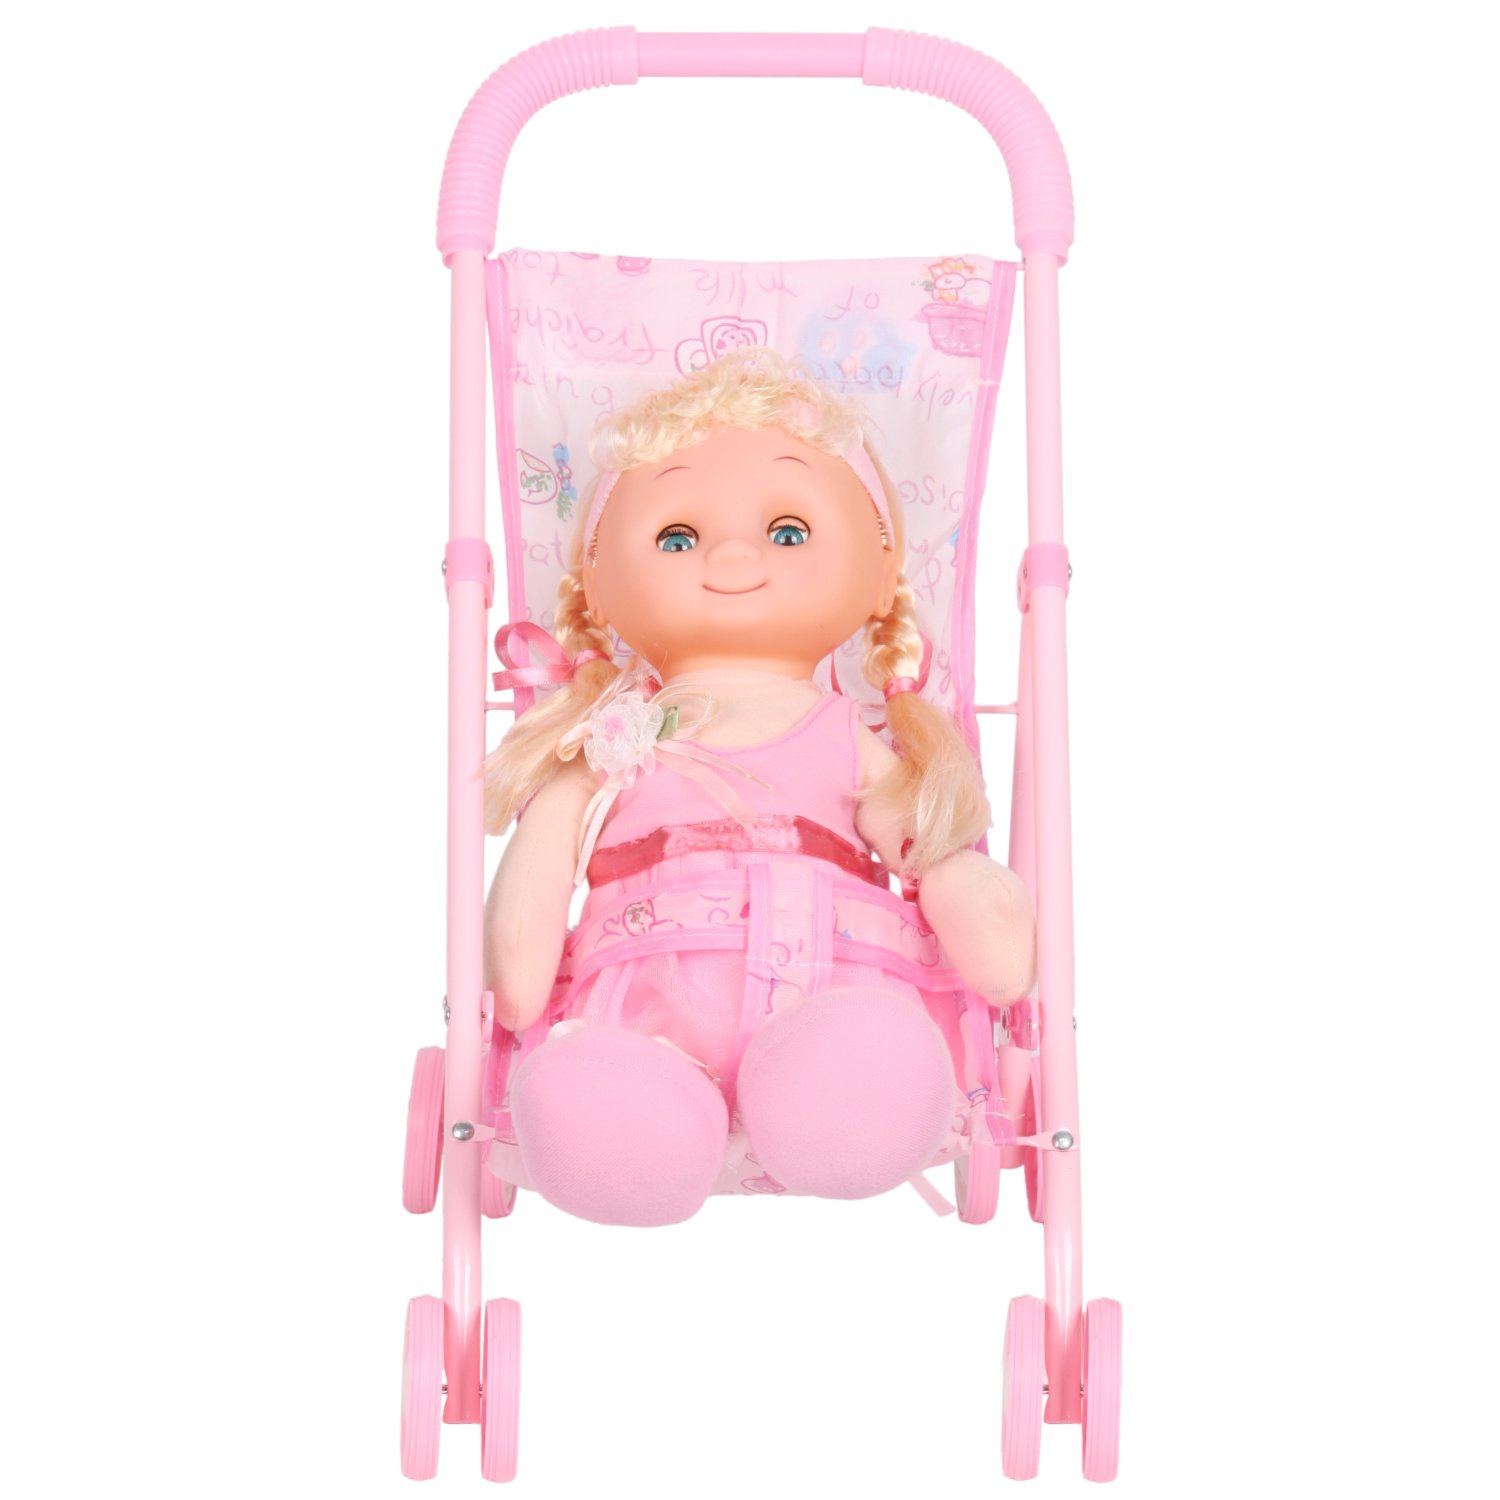 HSTOY Doll Stroller Baby Carriage Irony Pink Foldable with 4 Wheels